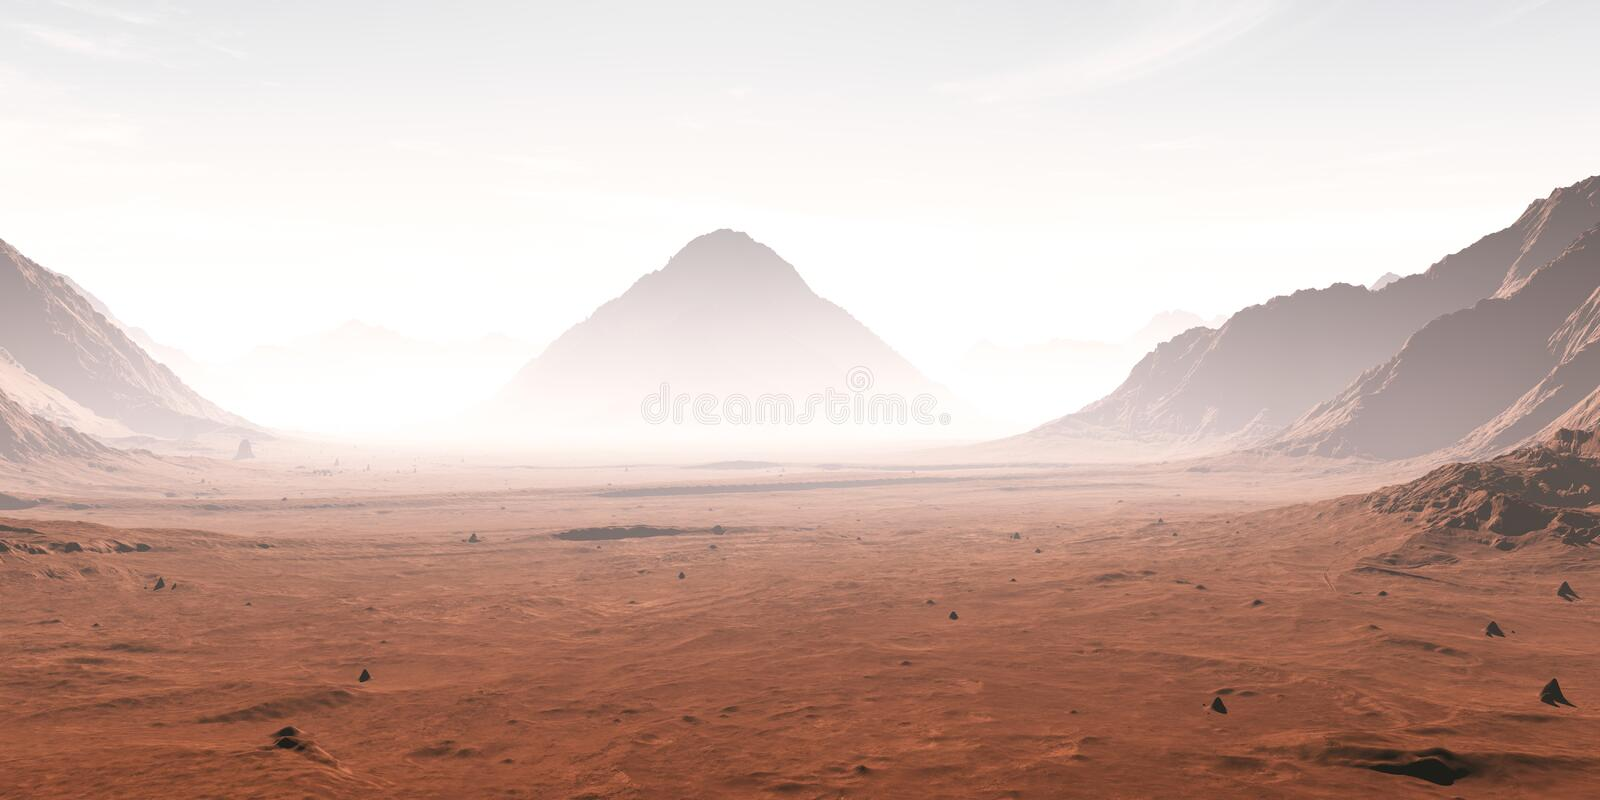 Dust obscured Martian landscape royalty free illustration